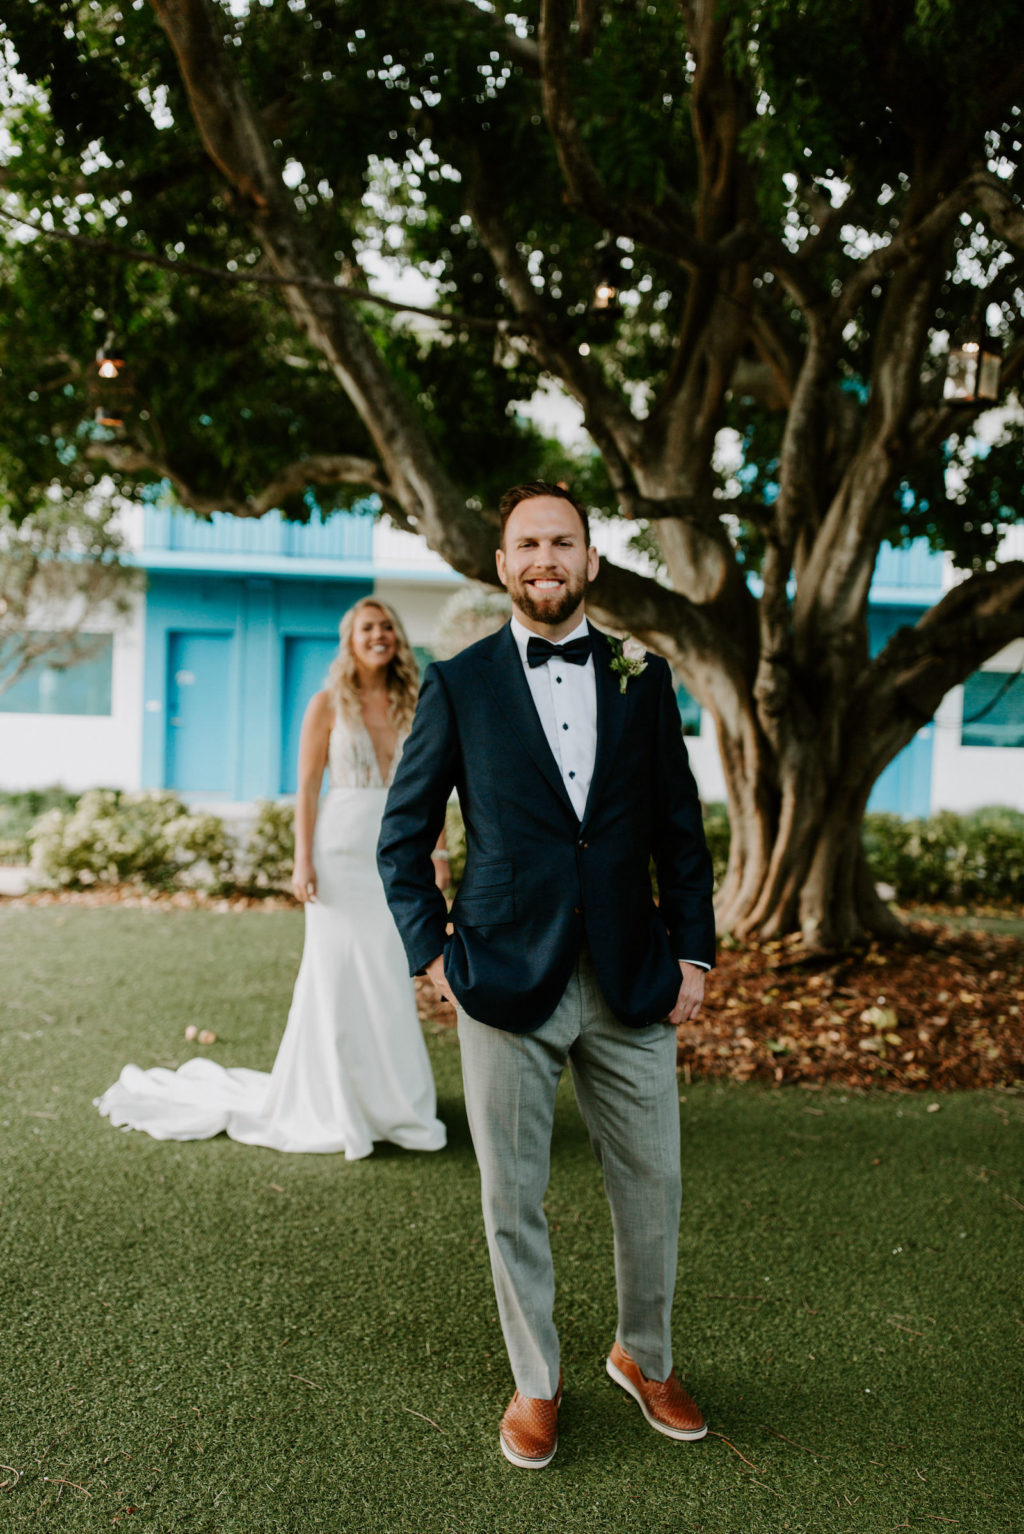 Tampa Bay Bride and Groom in Emerald Green Tuxedo Jacket and Bowtie First Look Photo   St. Pete Beach Wedding Venue Postcard Inn on the Beach